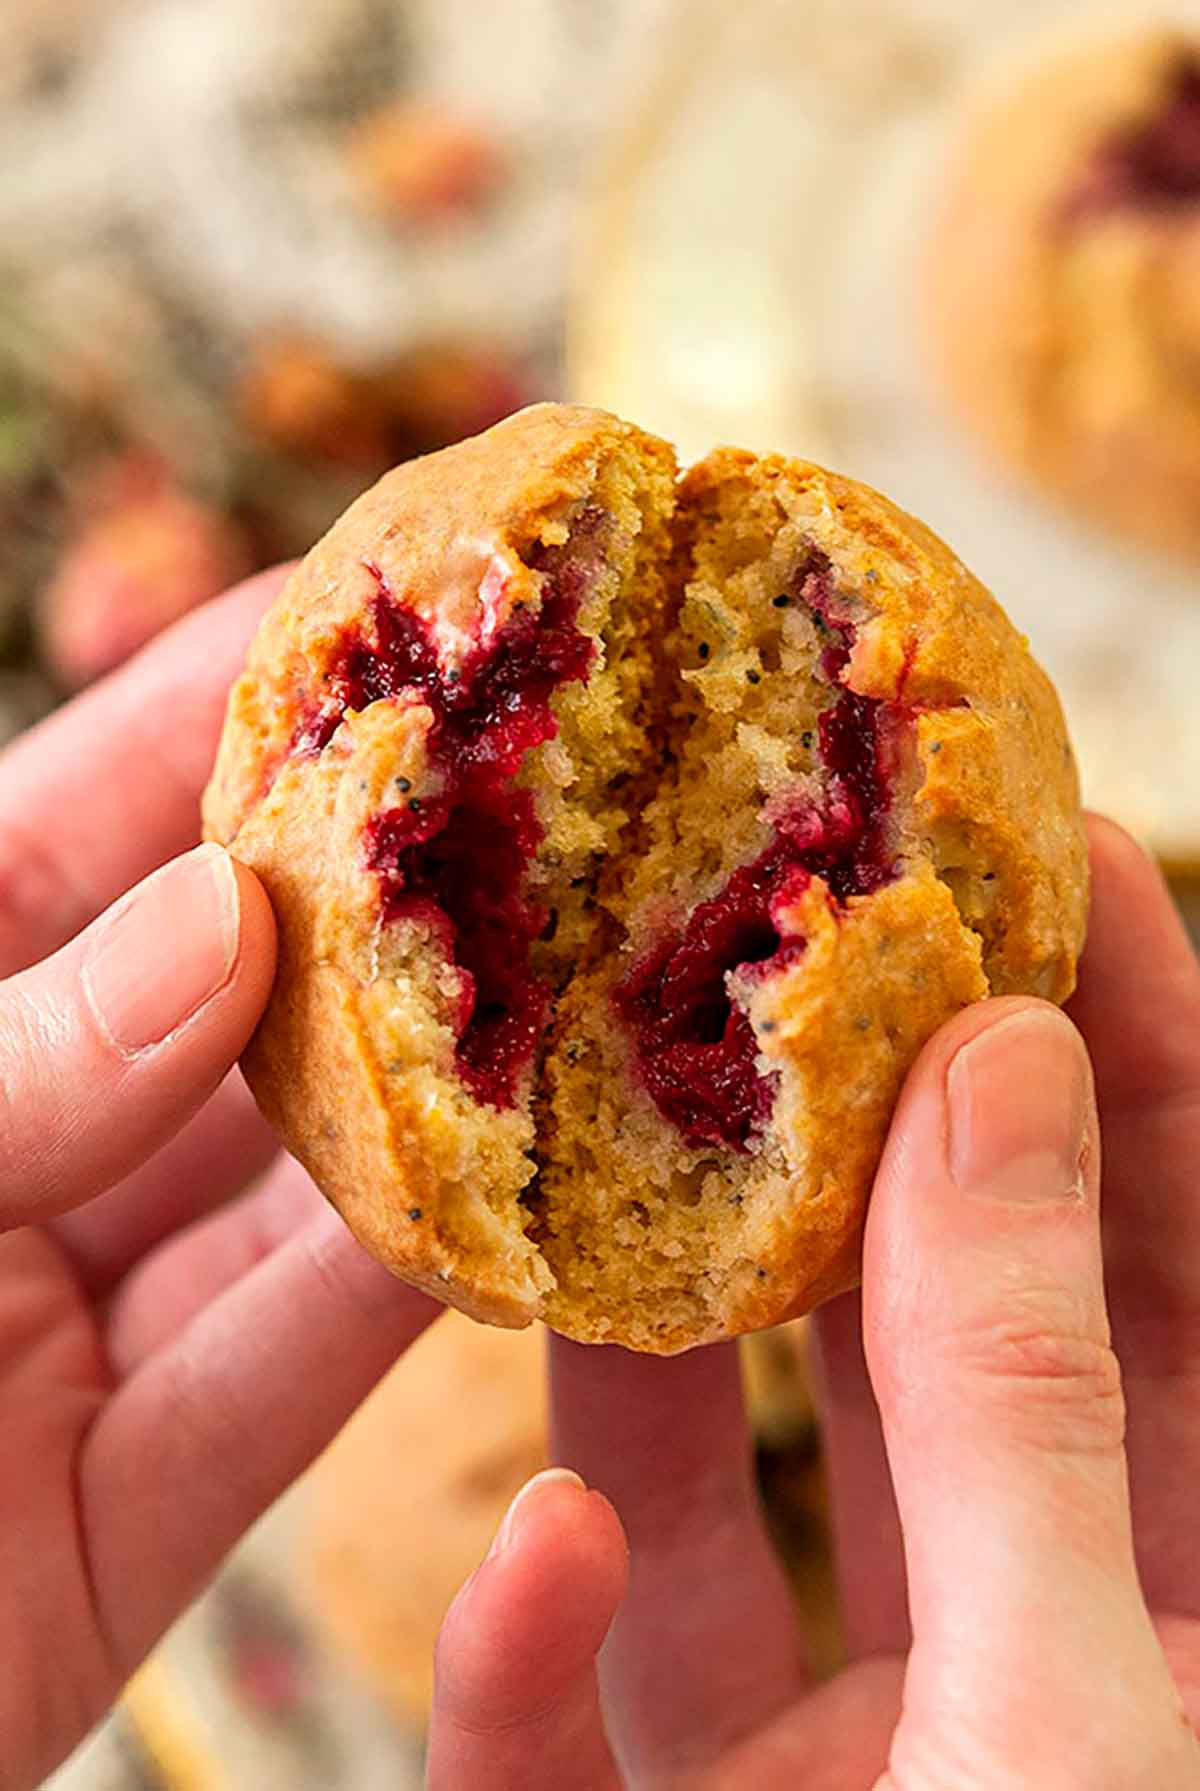 Hands opening up a scone showing raspberries inside.